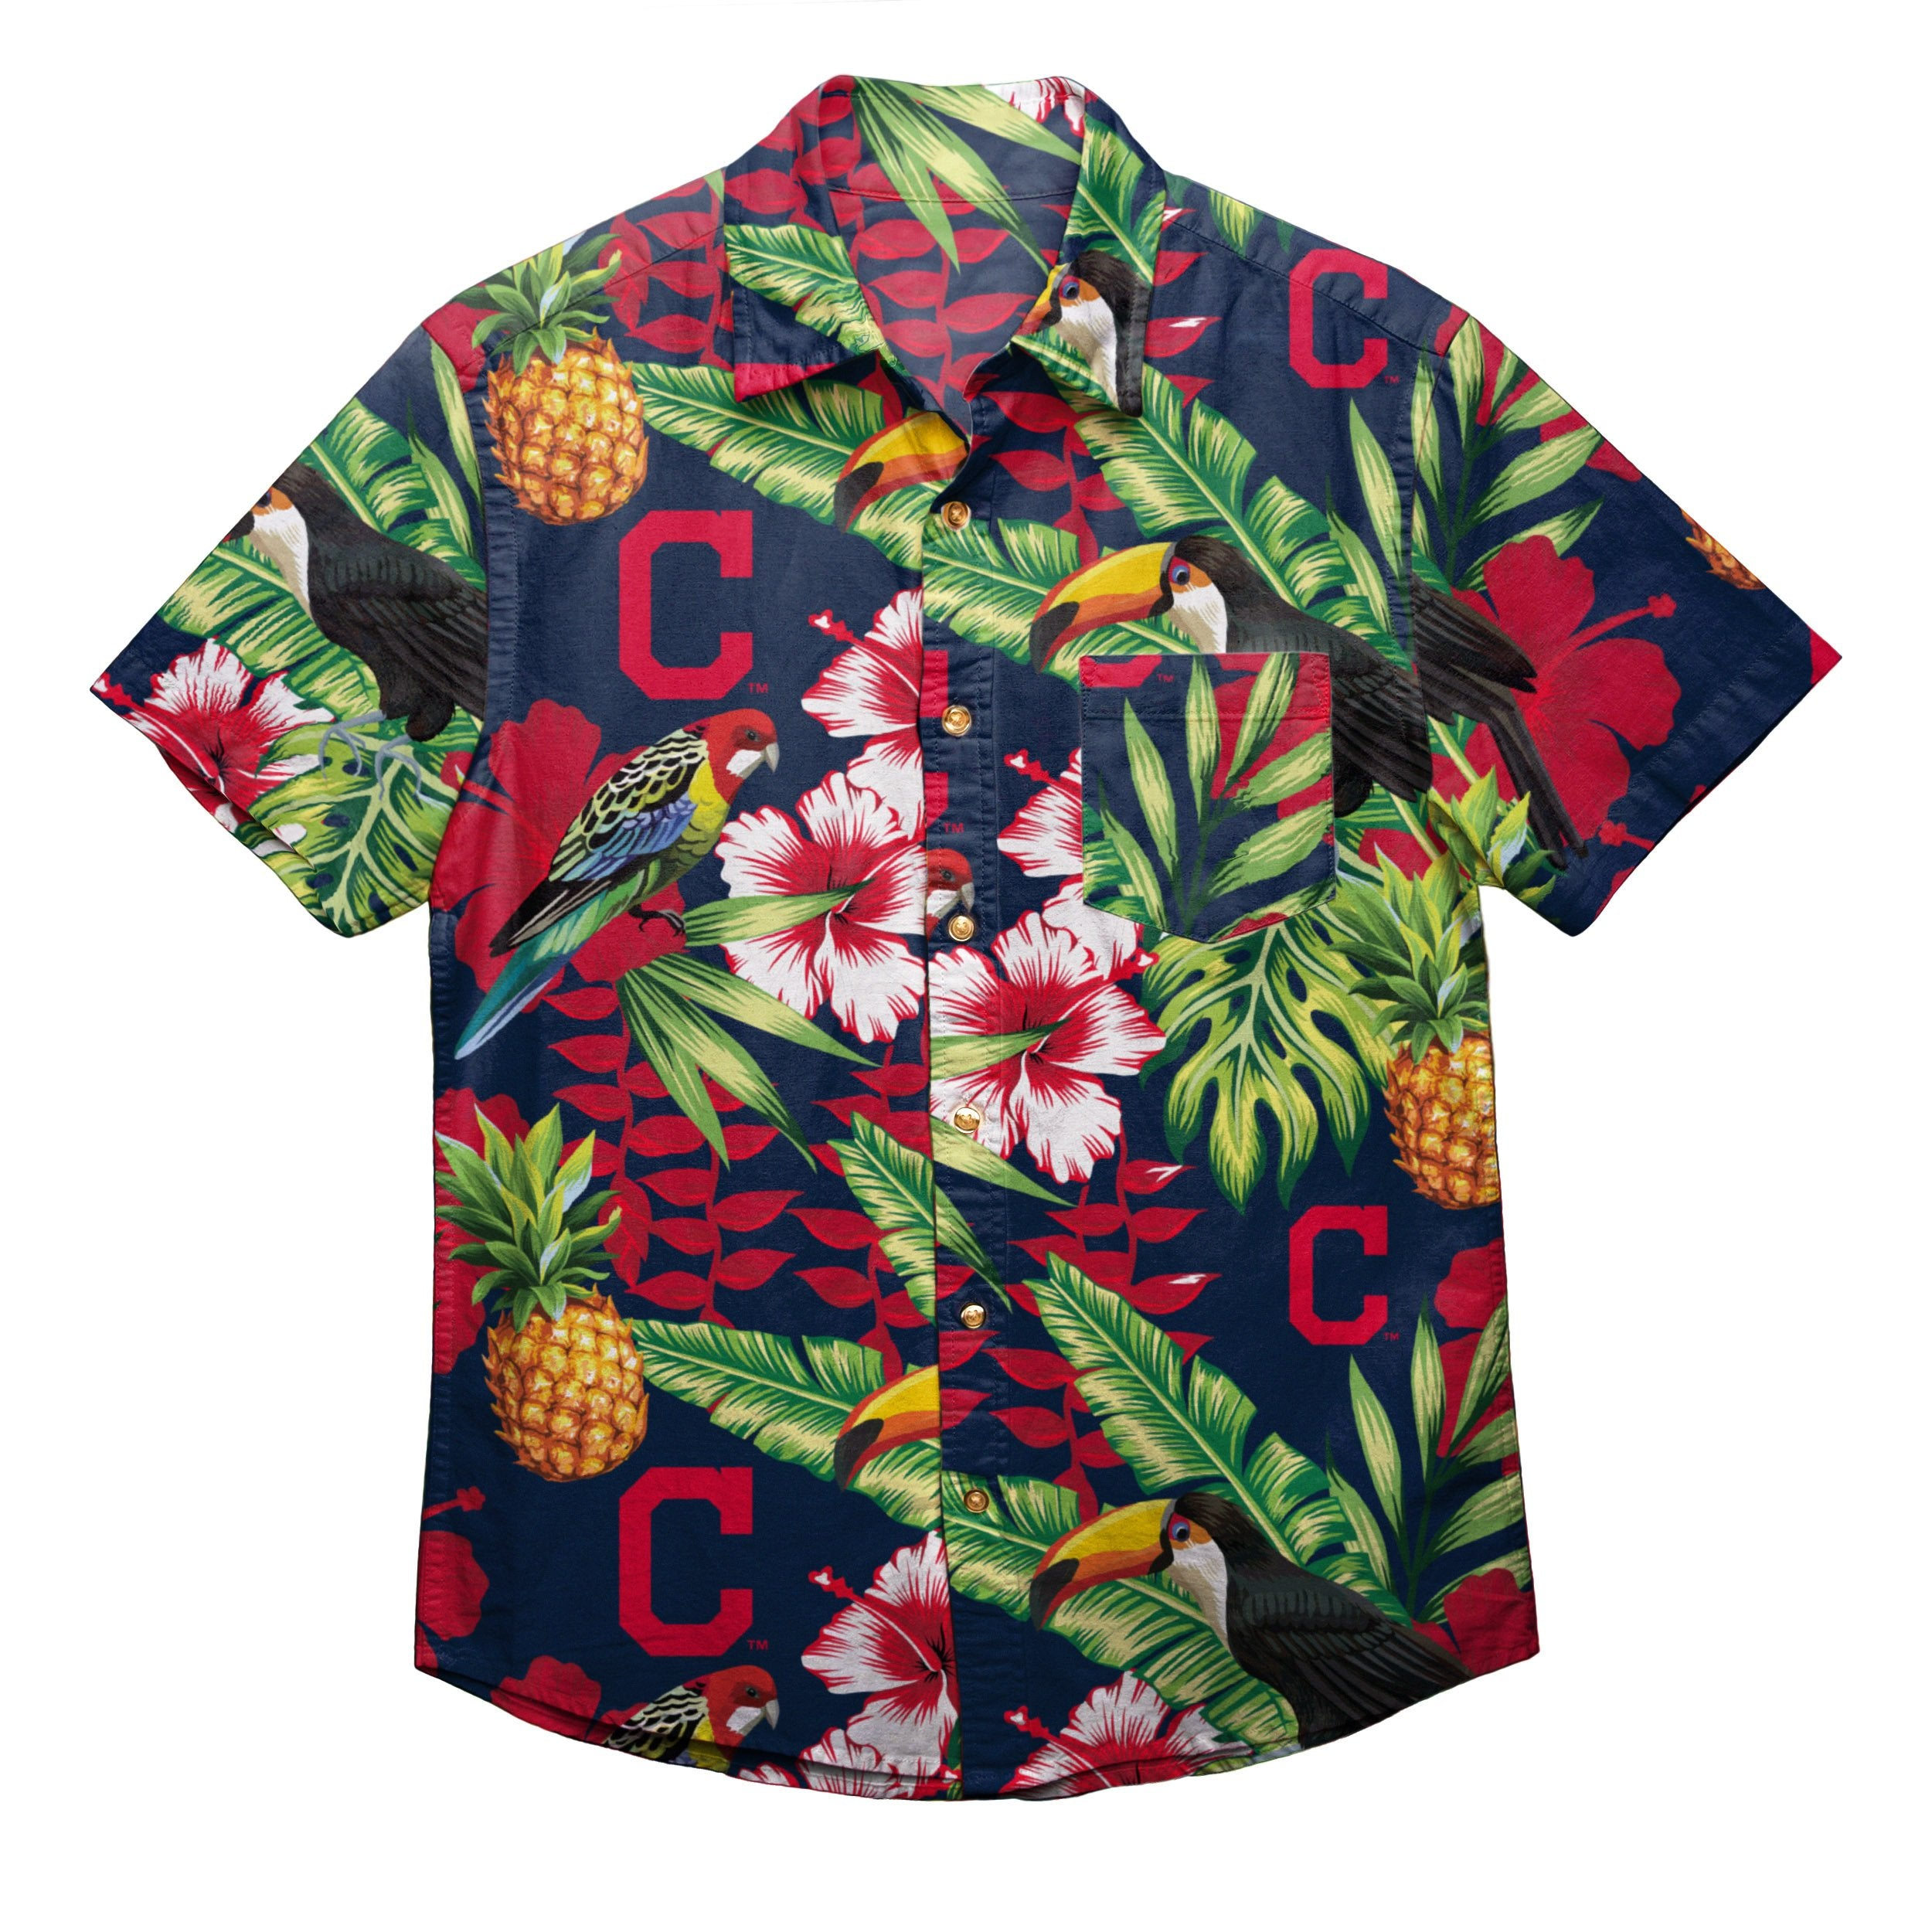 8de1a11a Cleveland Indians MLB Mens Floral Button Up Shirt (PREORDER - SHIPS IN